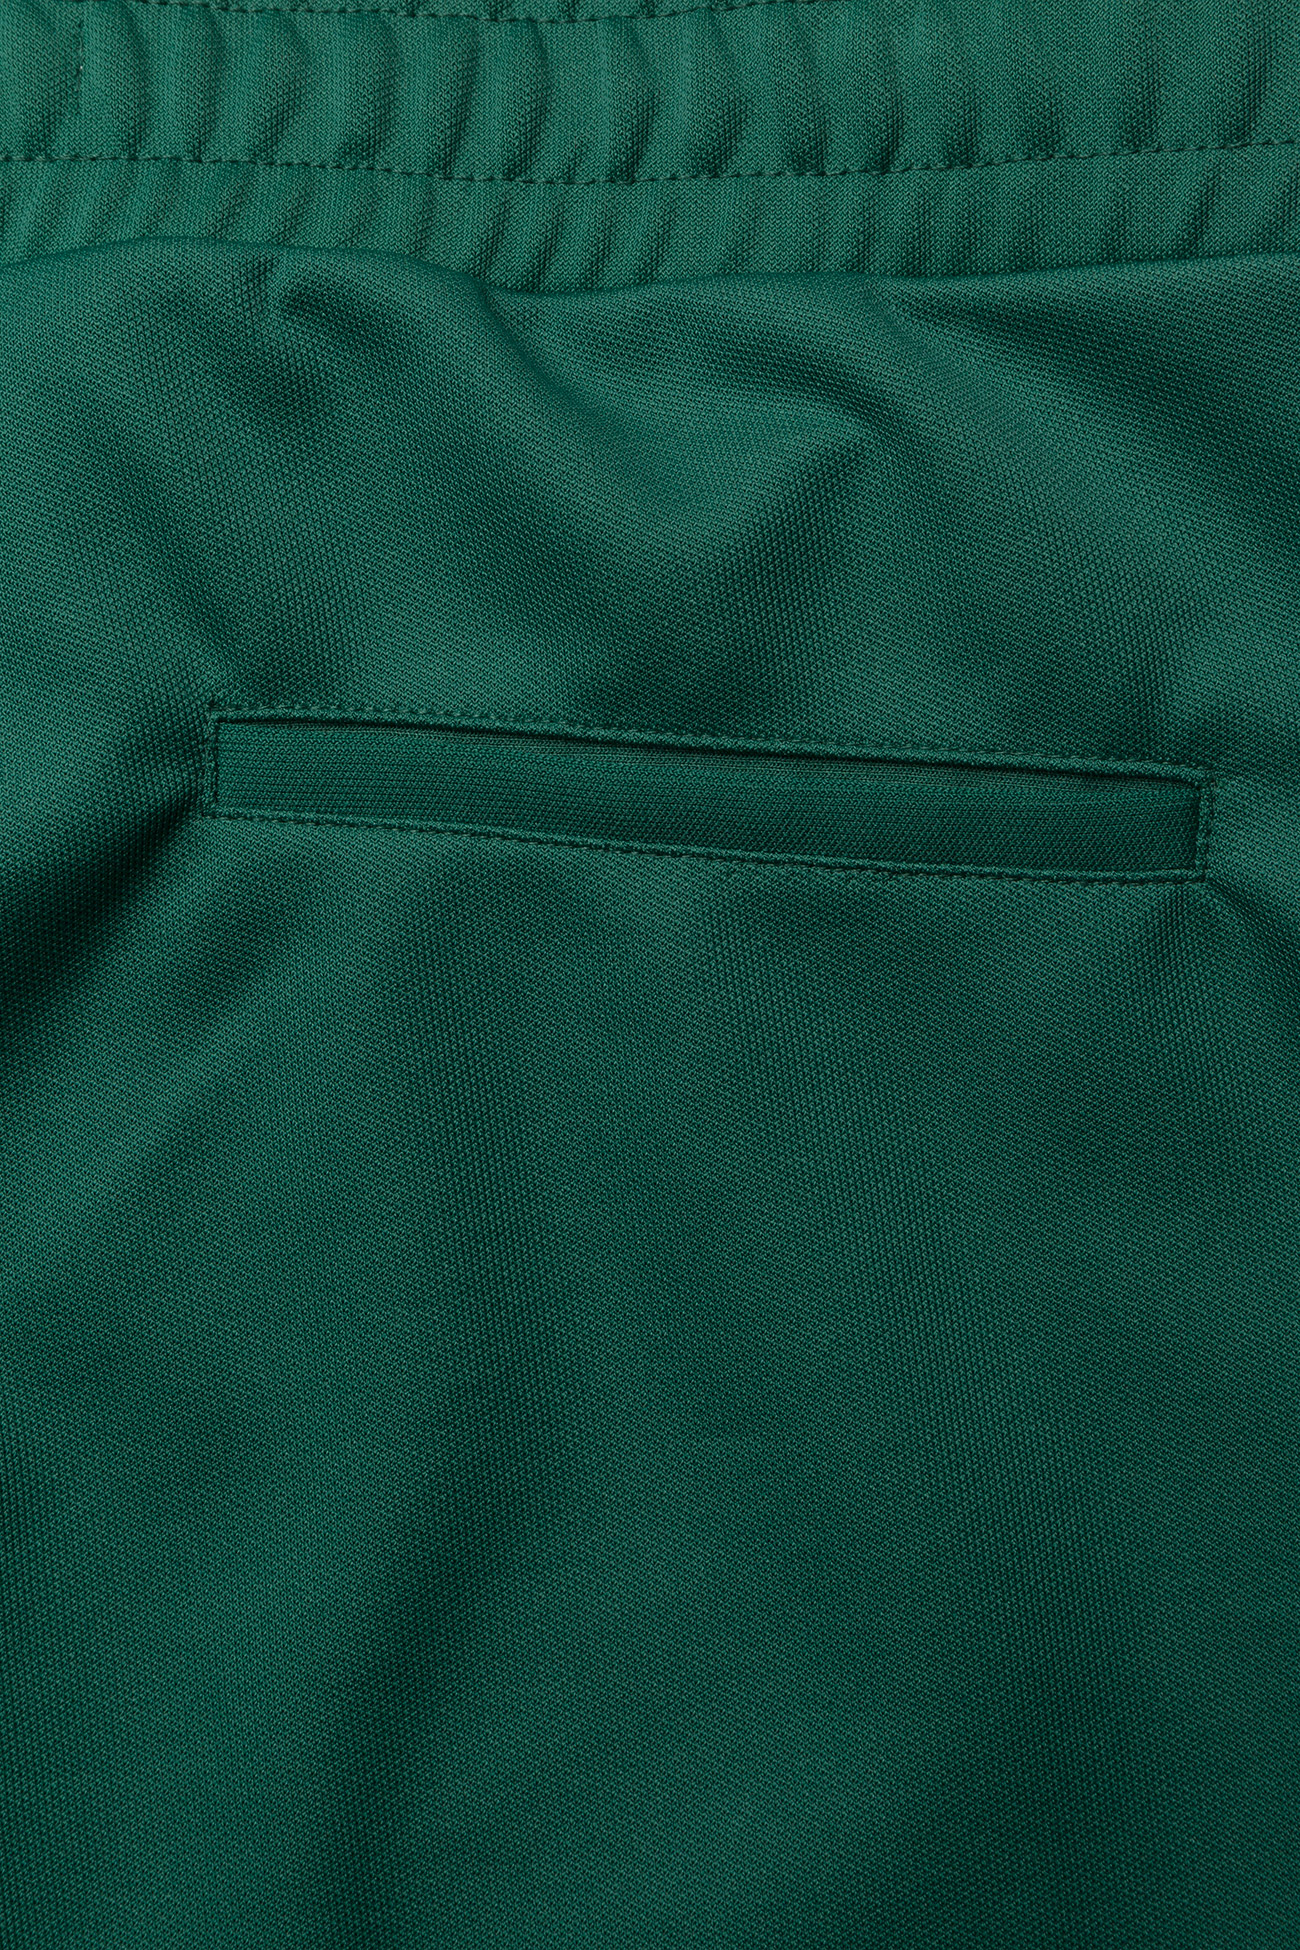 Zoe Karssen BIG IN JAPAN - Jogginghosen ANTIQUE GREEN - Damen Kleidung